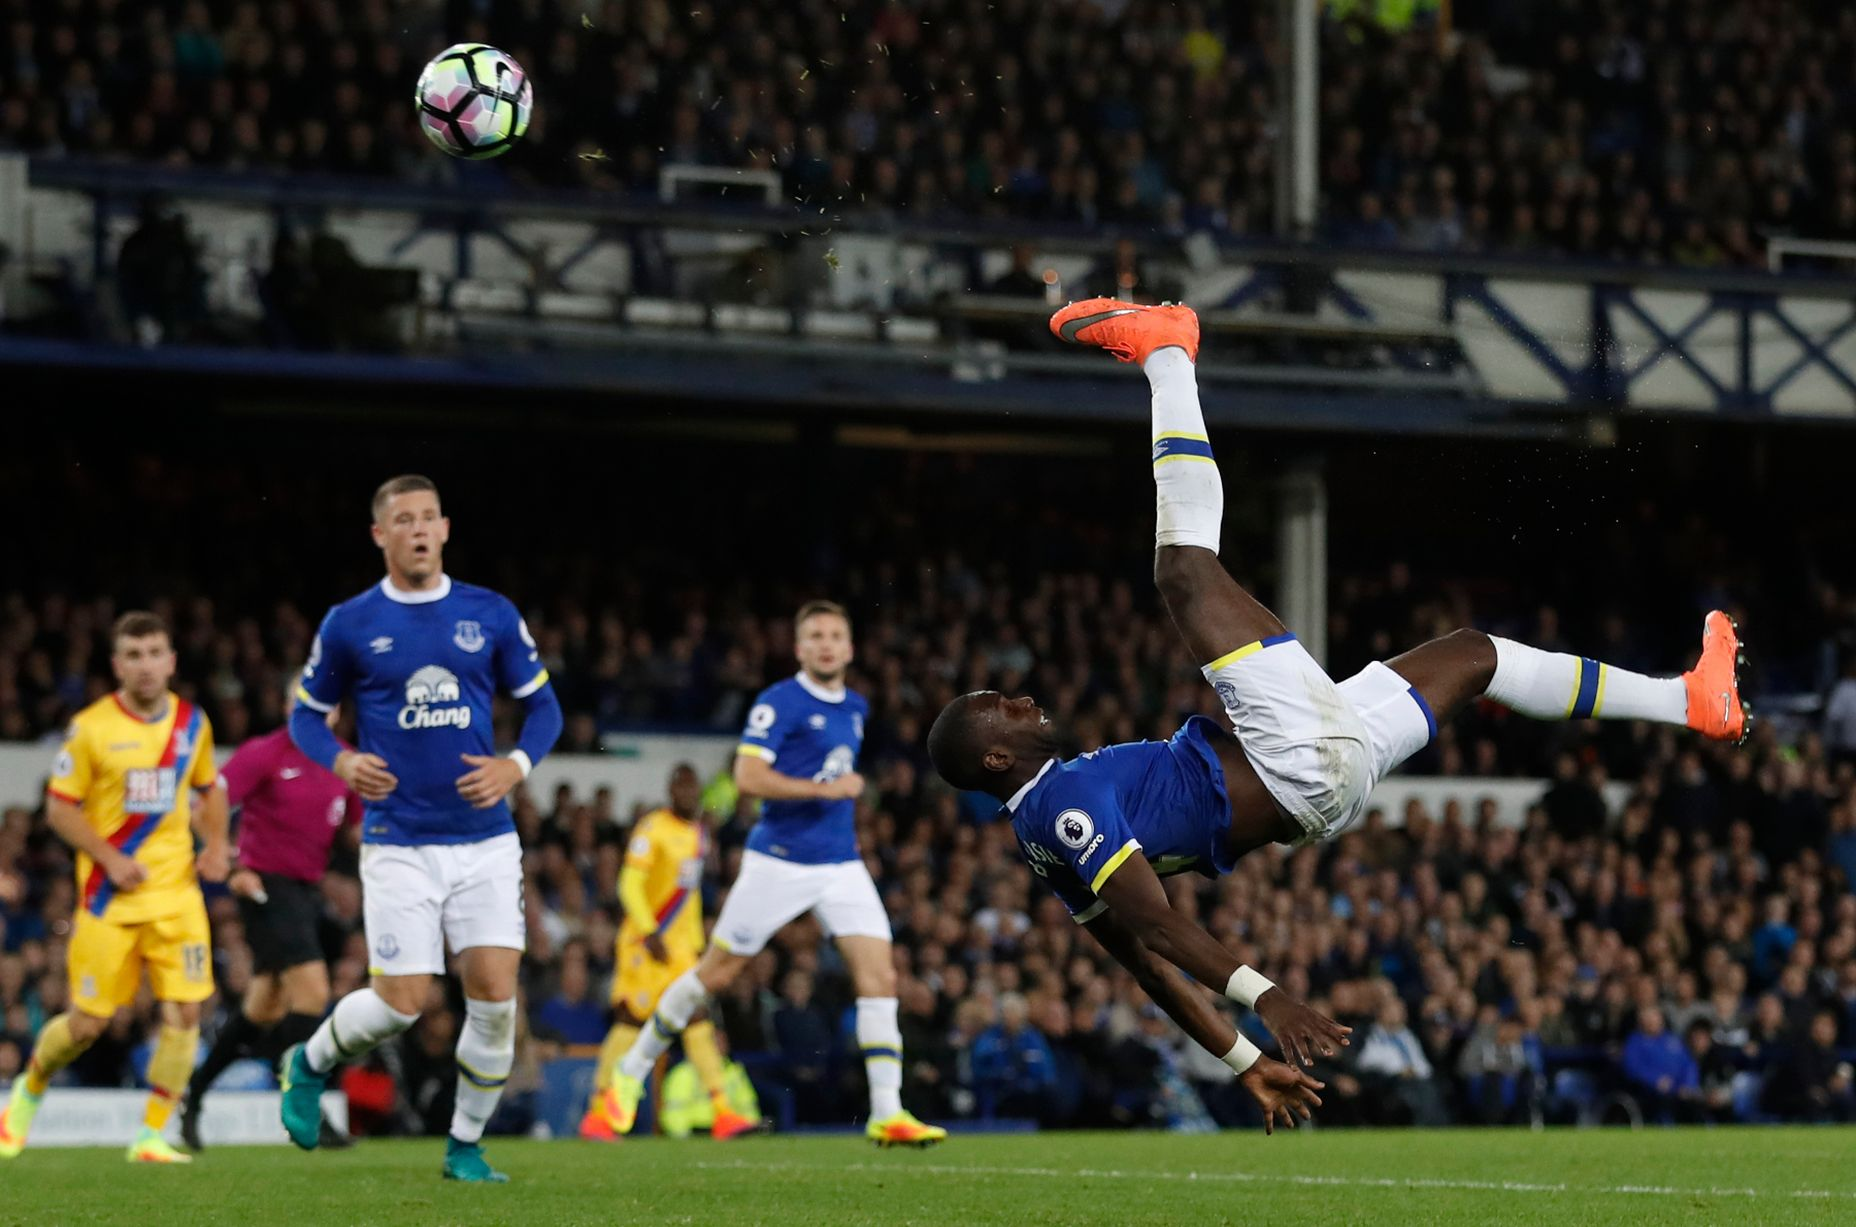 Yannick Bolasie with an overhead kick